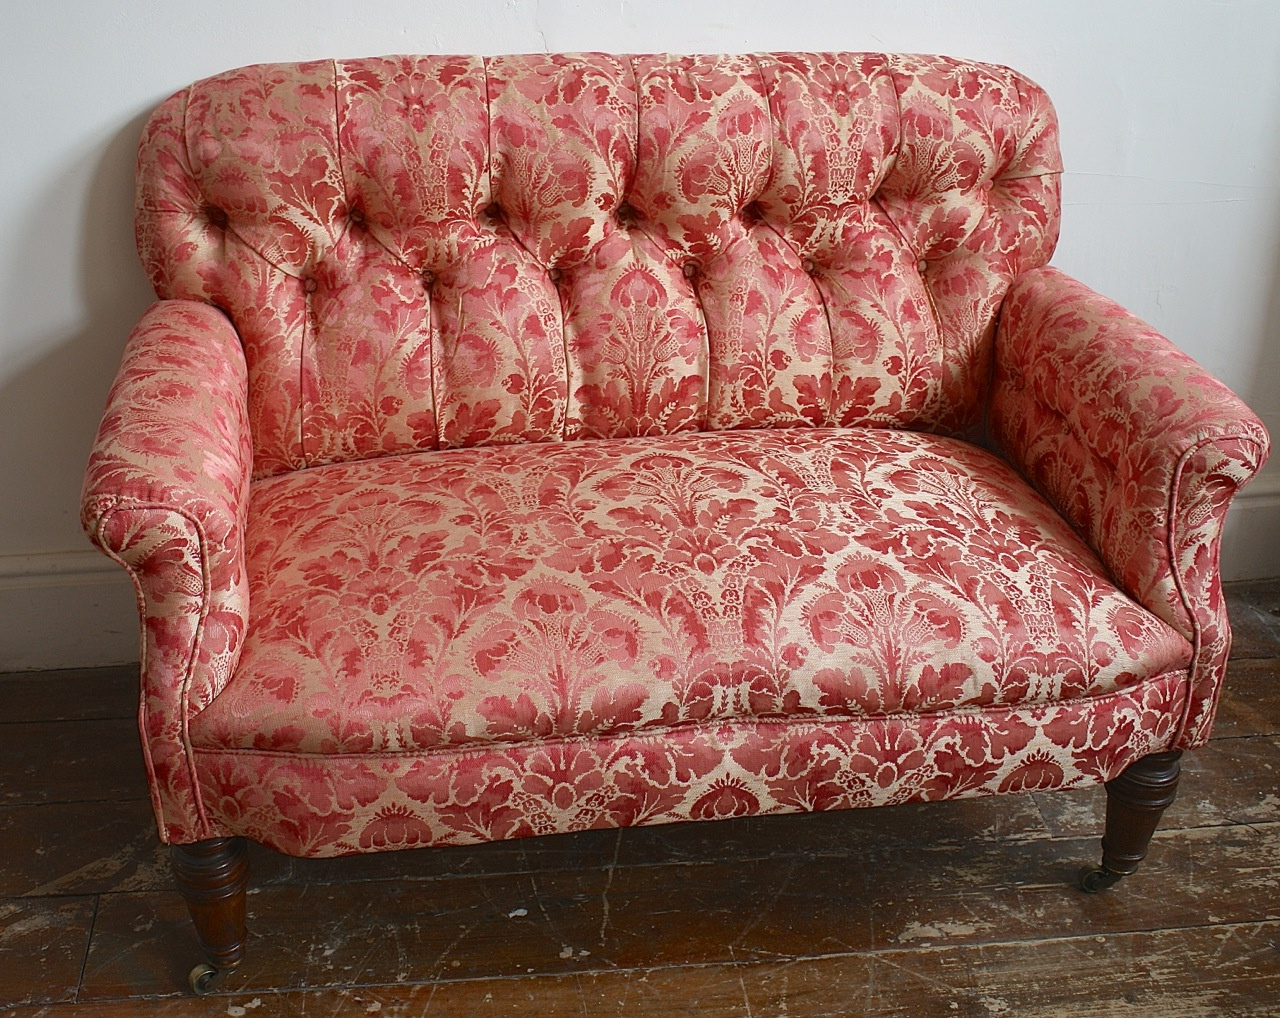 Favorite Leather Chairs Of Bath Early Victorian Sofa, Antique Sofa, Antique Regarding Antique Sofa Chairs (View 11 of 20)